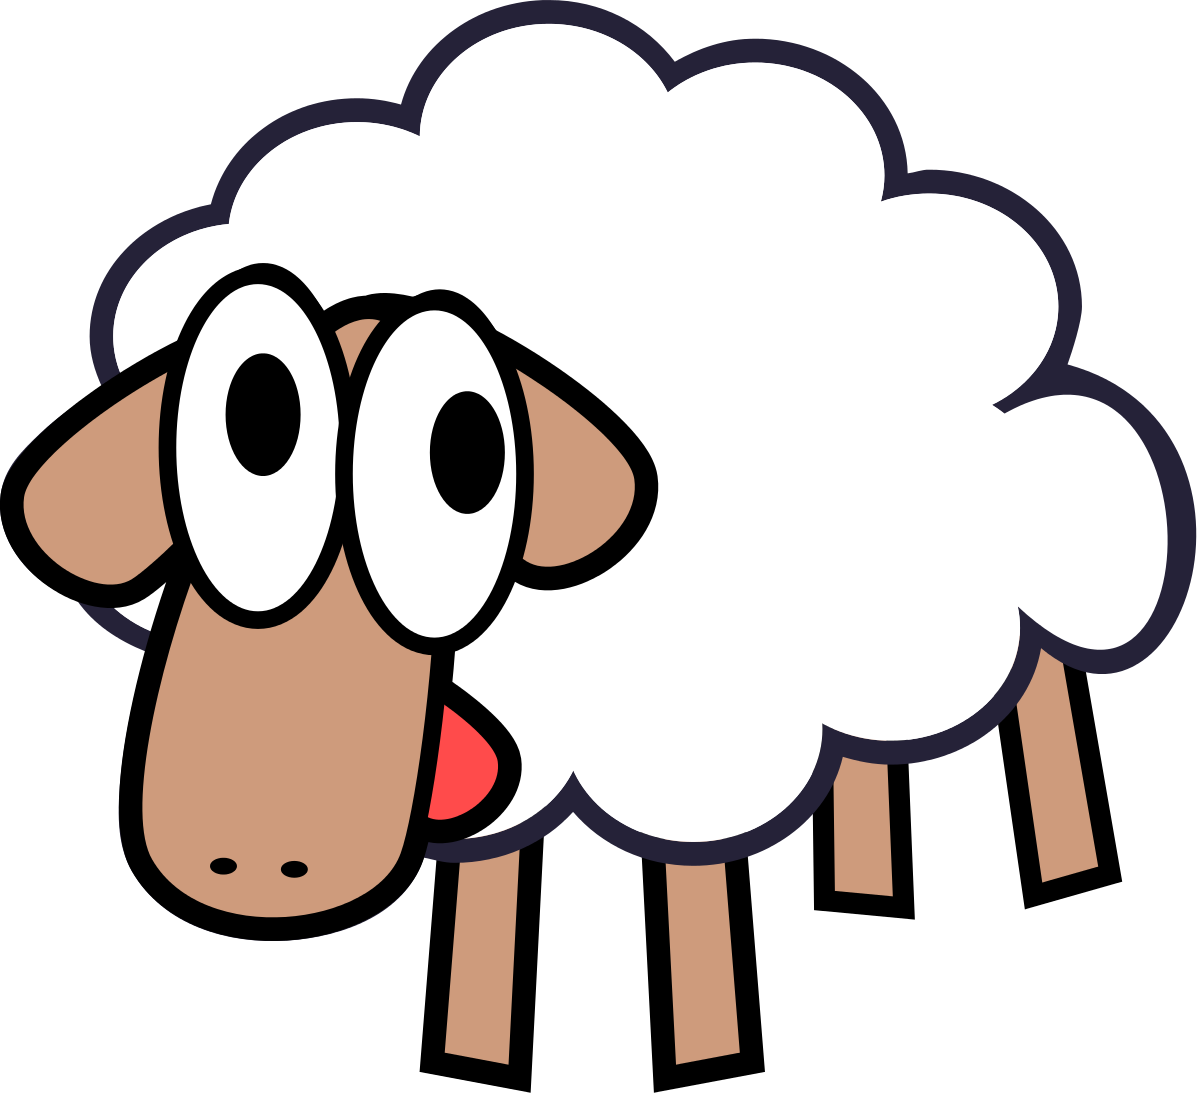 Cow clip art clear background. Cartoon clipart of sheep